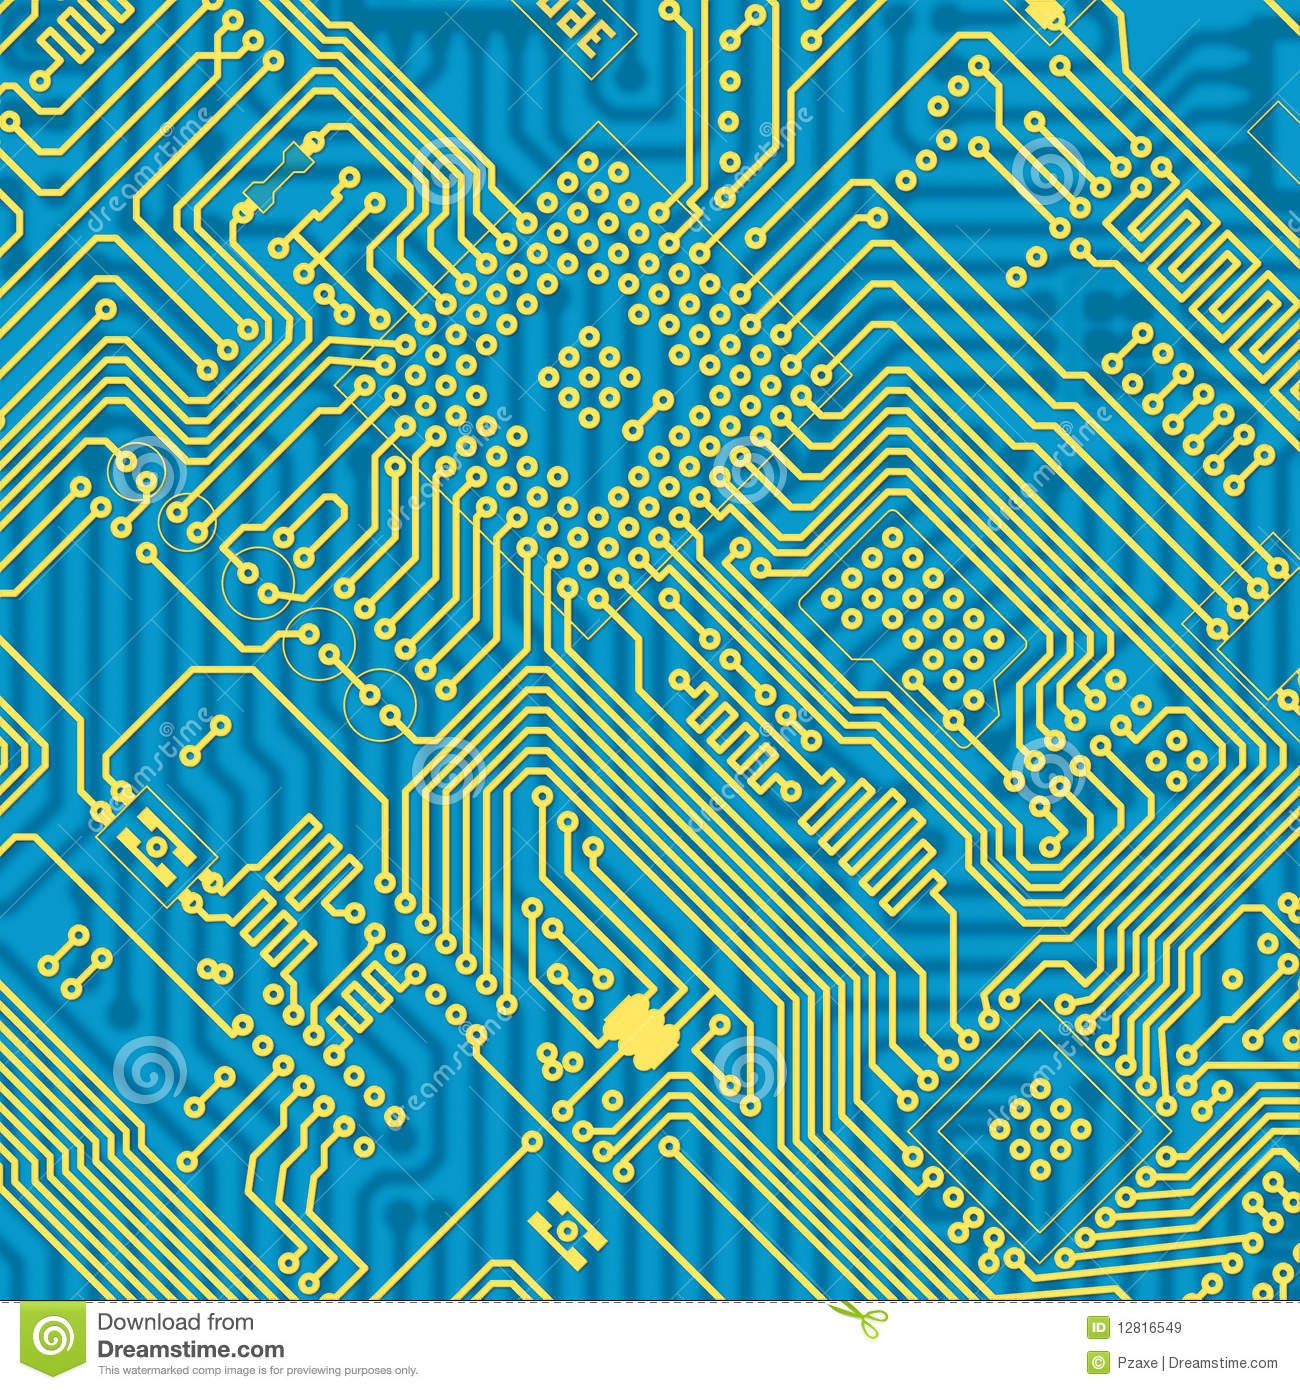 printed blue industrial circuit board texture royalty free